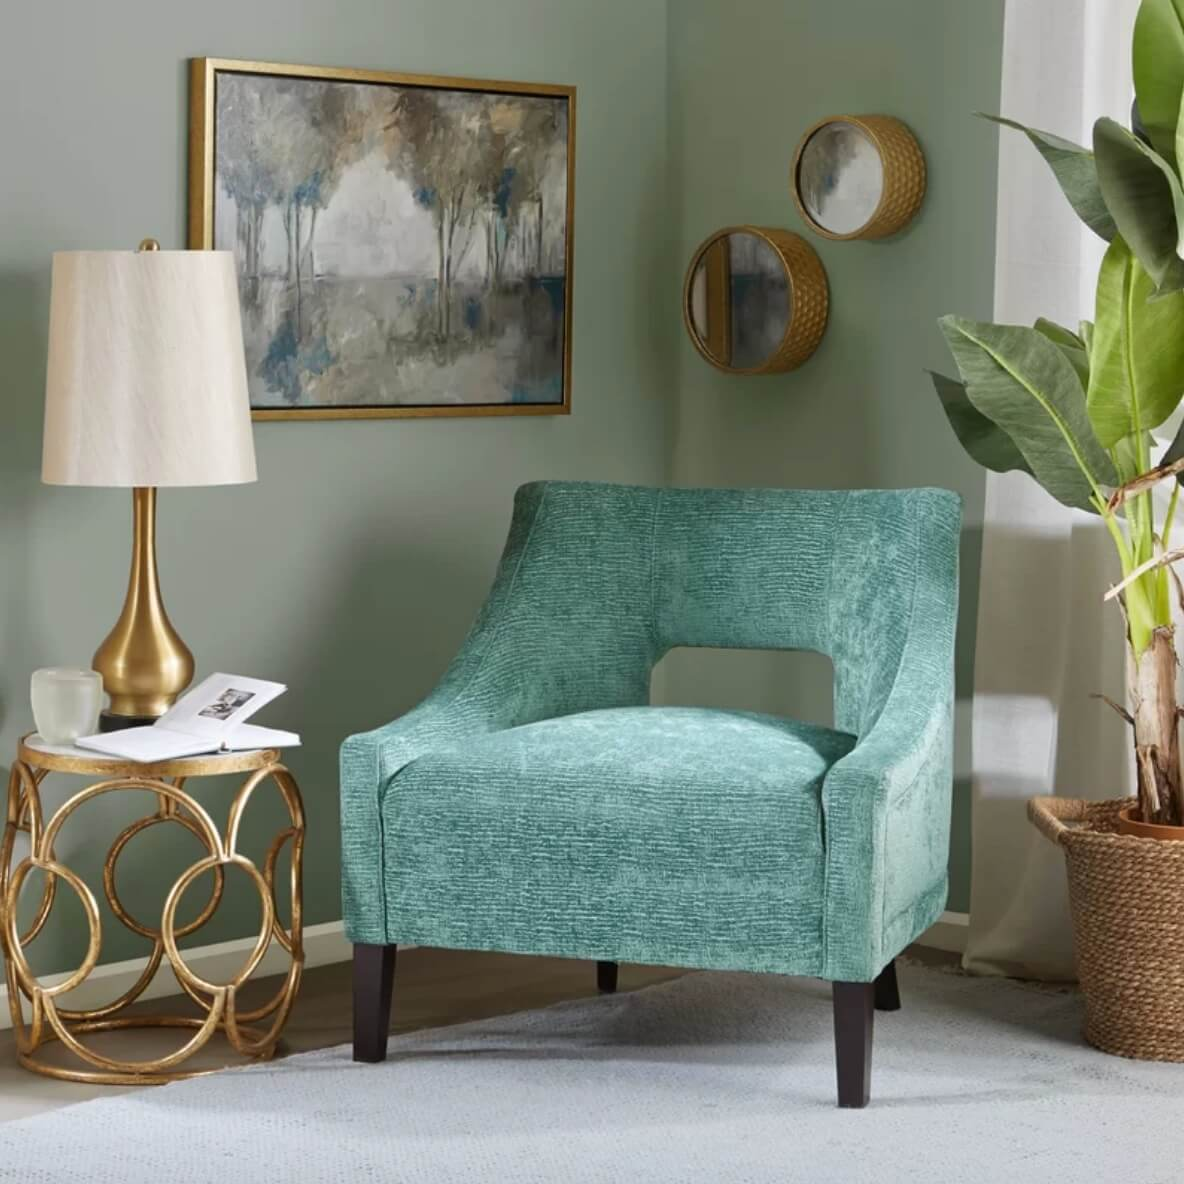 Modern Teal Chair & 20 Colorful Accent Chair Ideas and Inspiration - Freshome